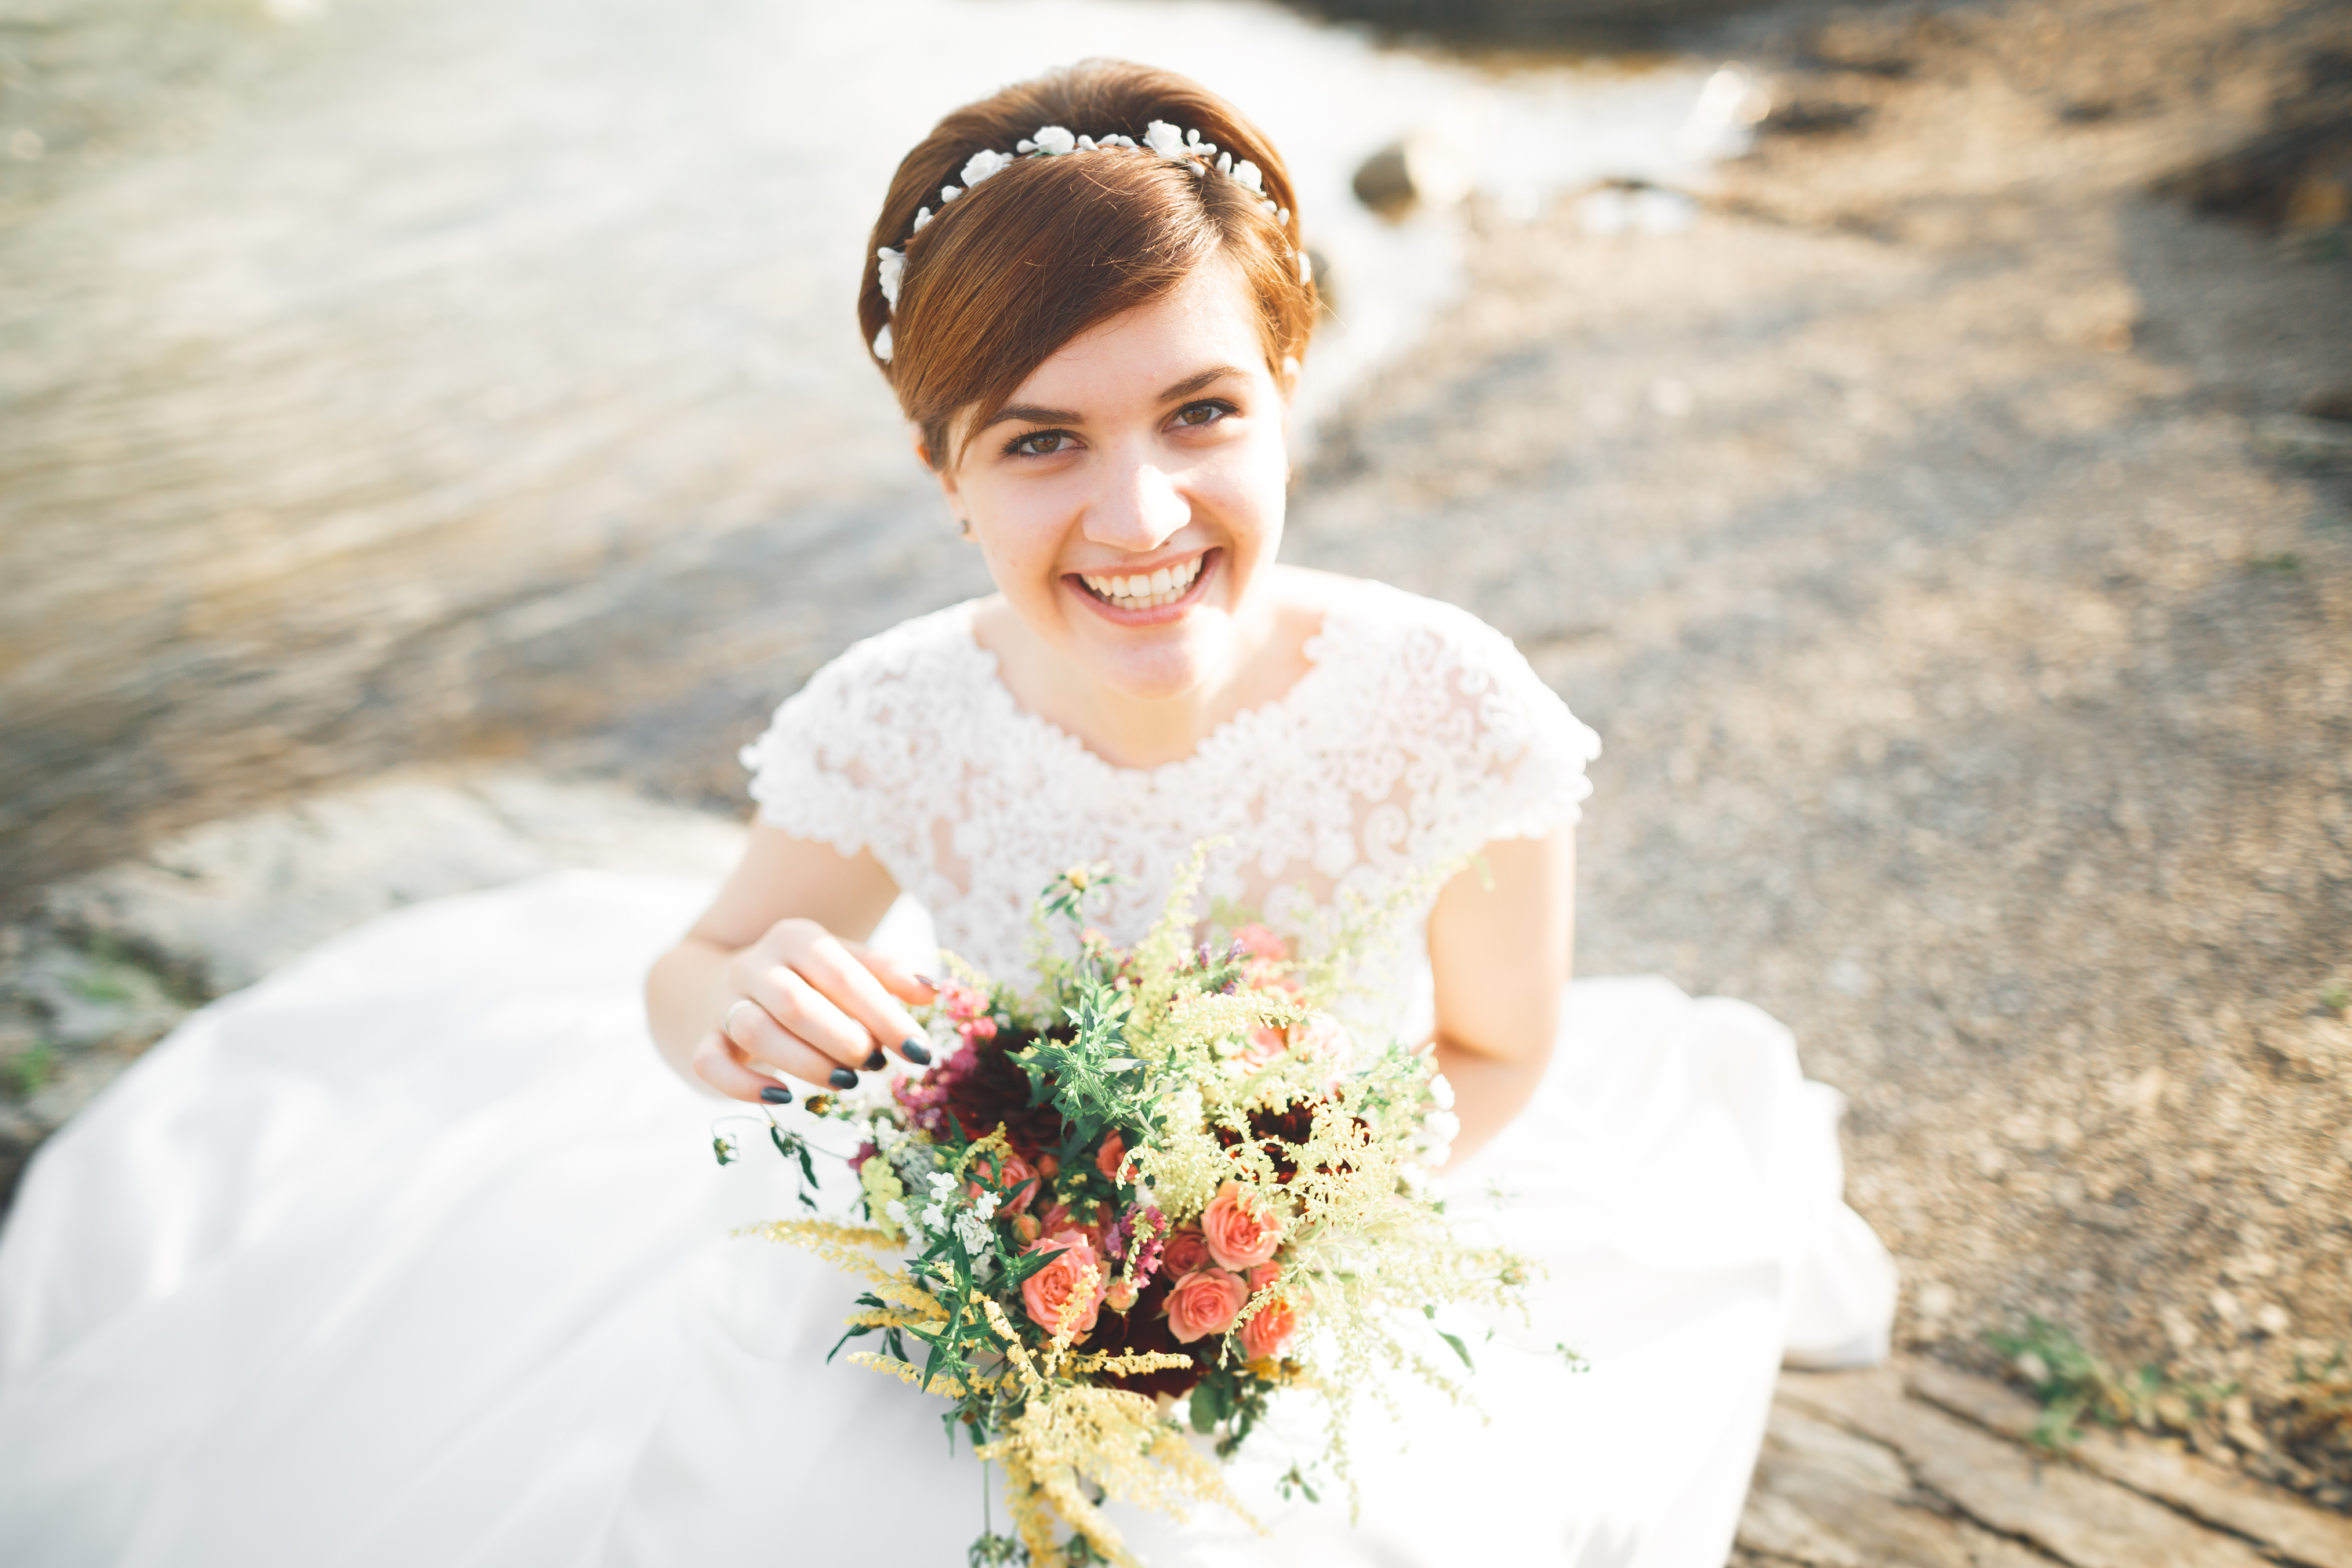 It can be tricky to find a hairstyle for your wedding if you have short hair. Try using a cute headband to help you style it.